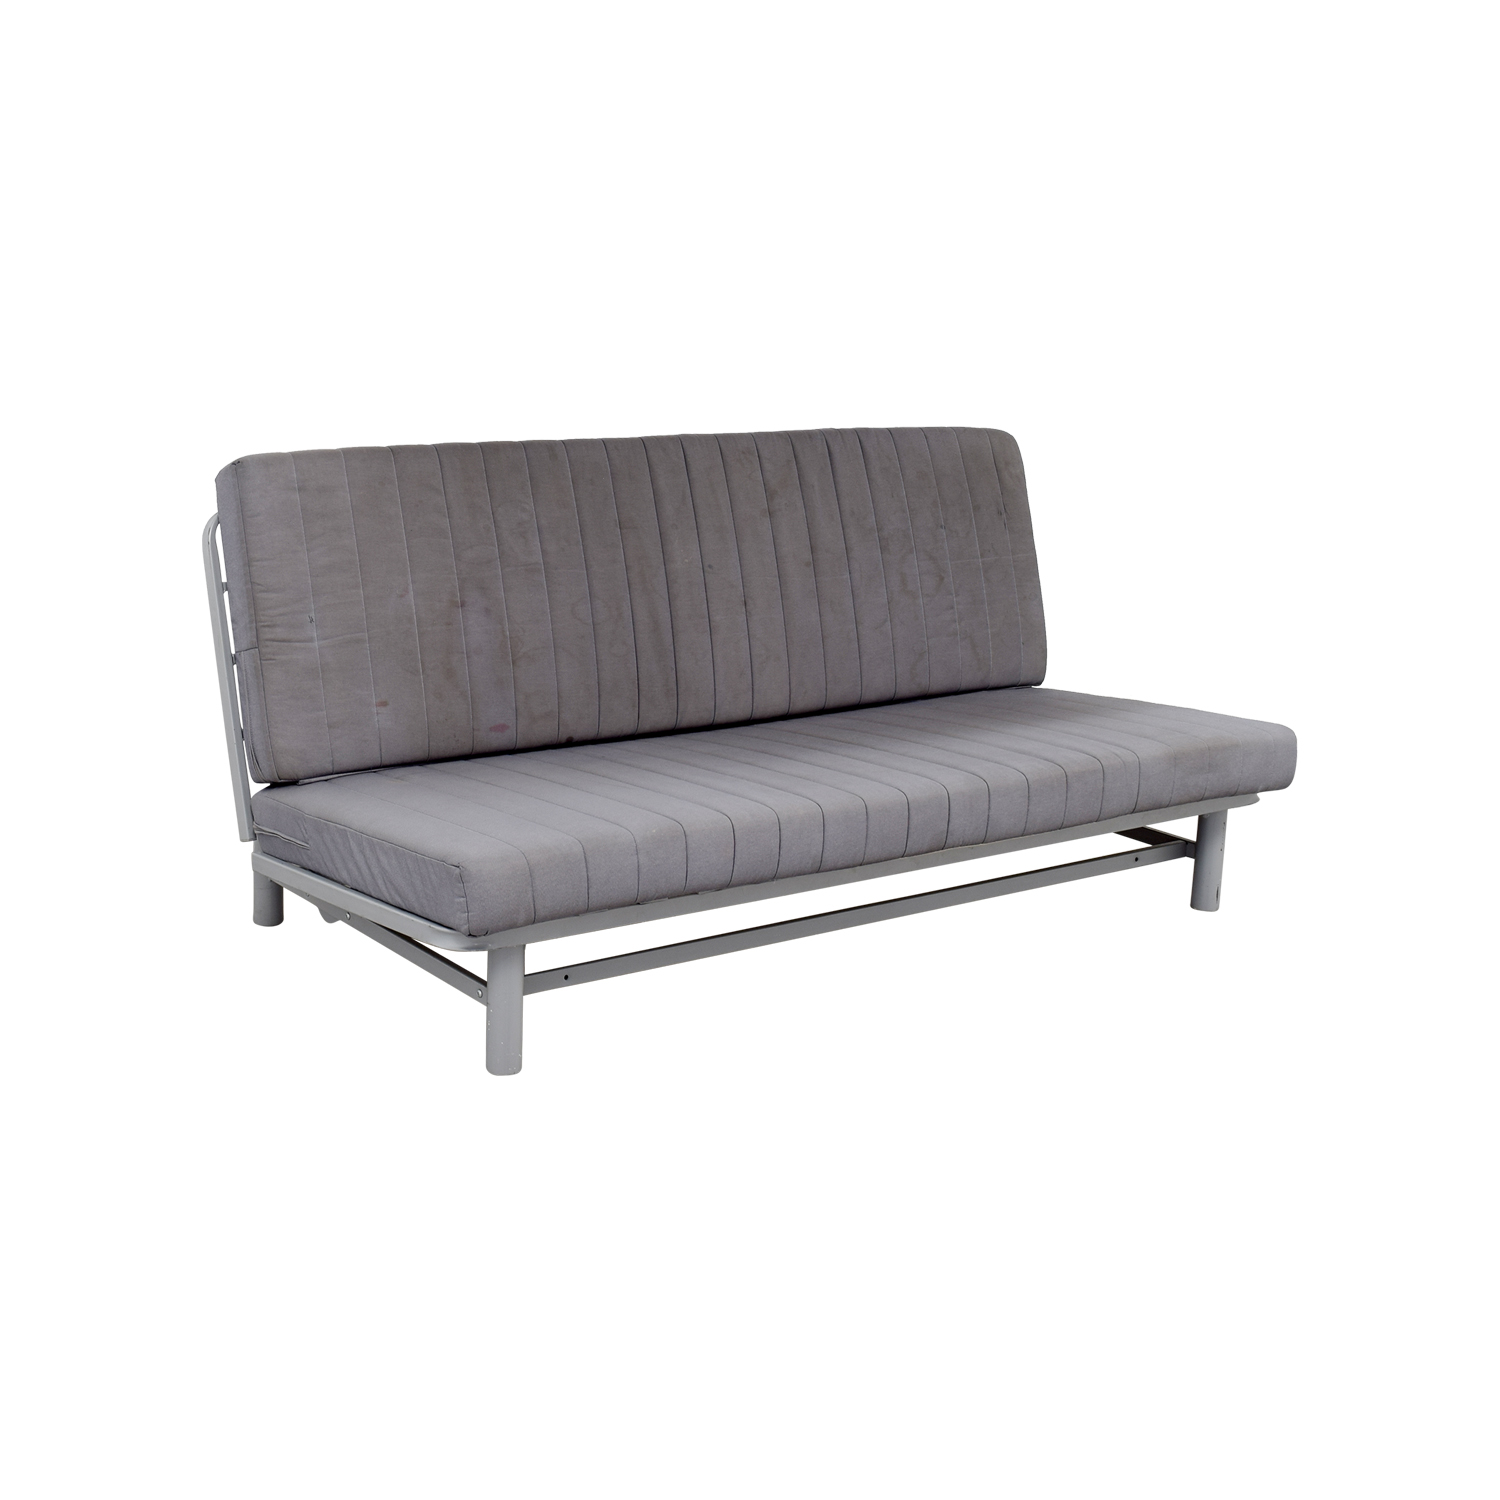 90 off ikea ikea grey sofa bed sofas for 90 cm sofa bed